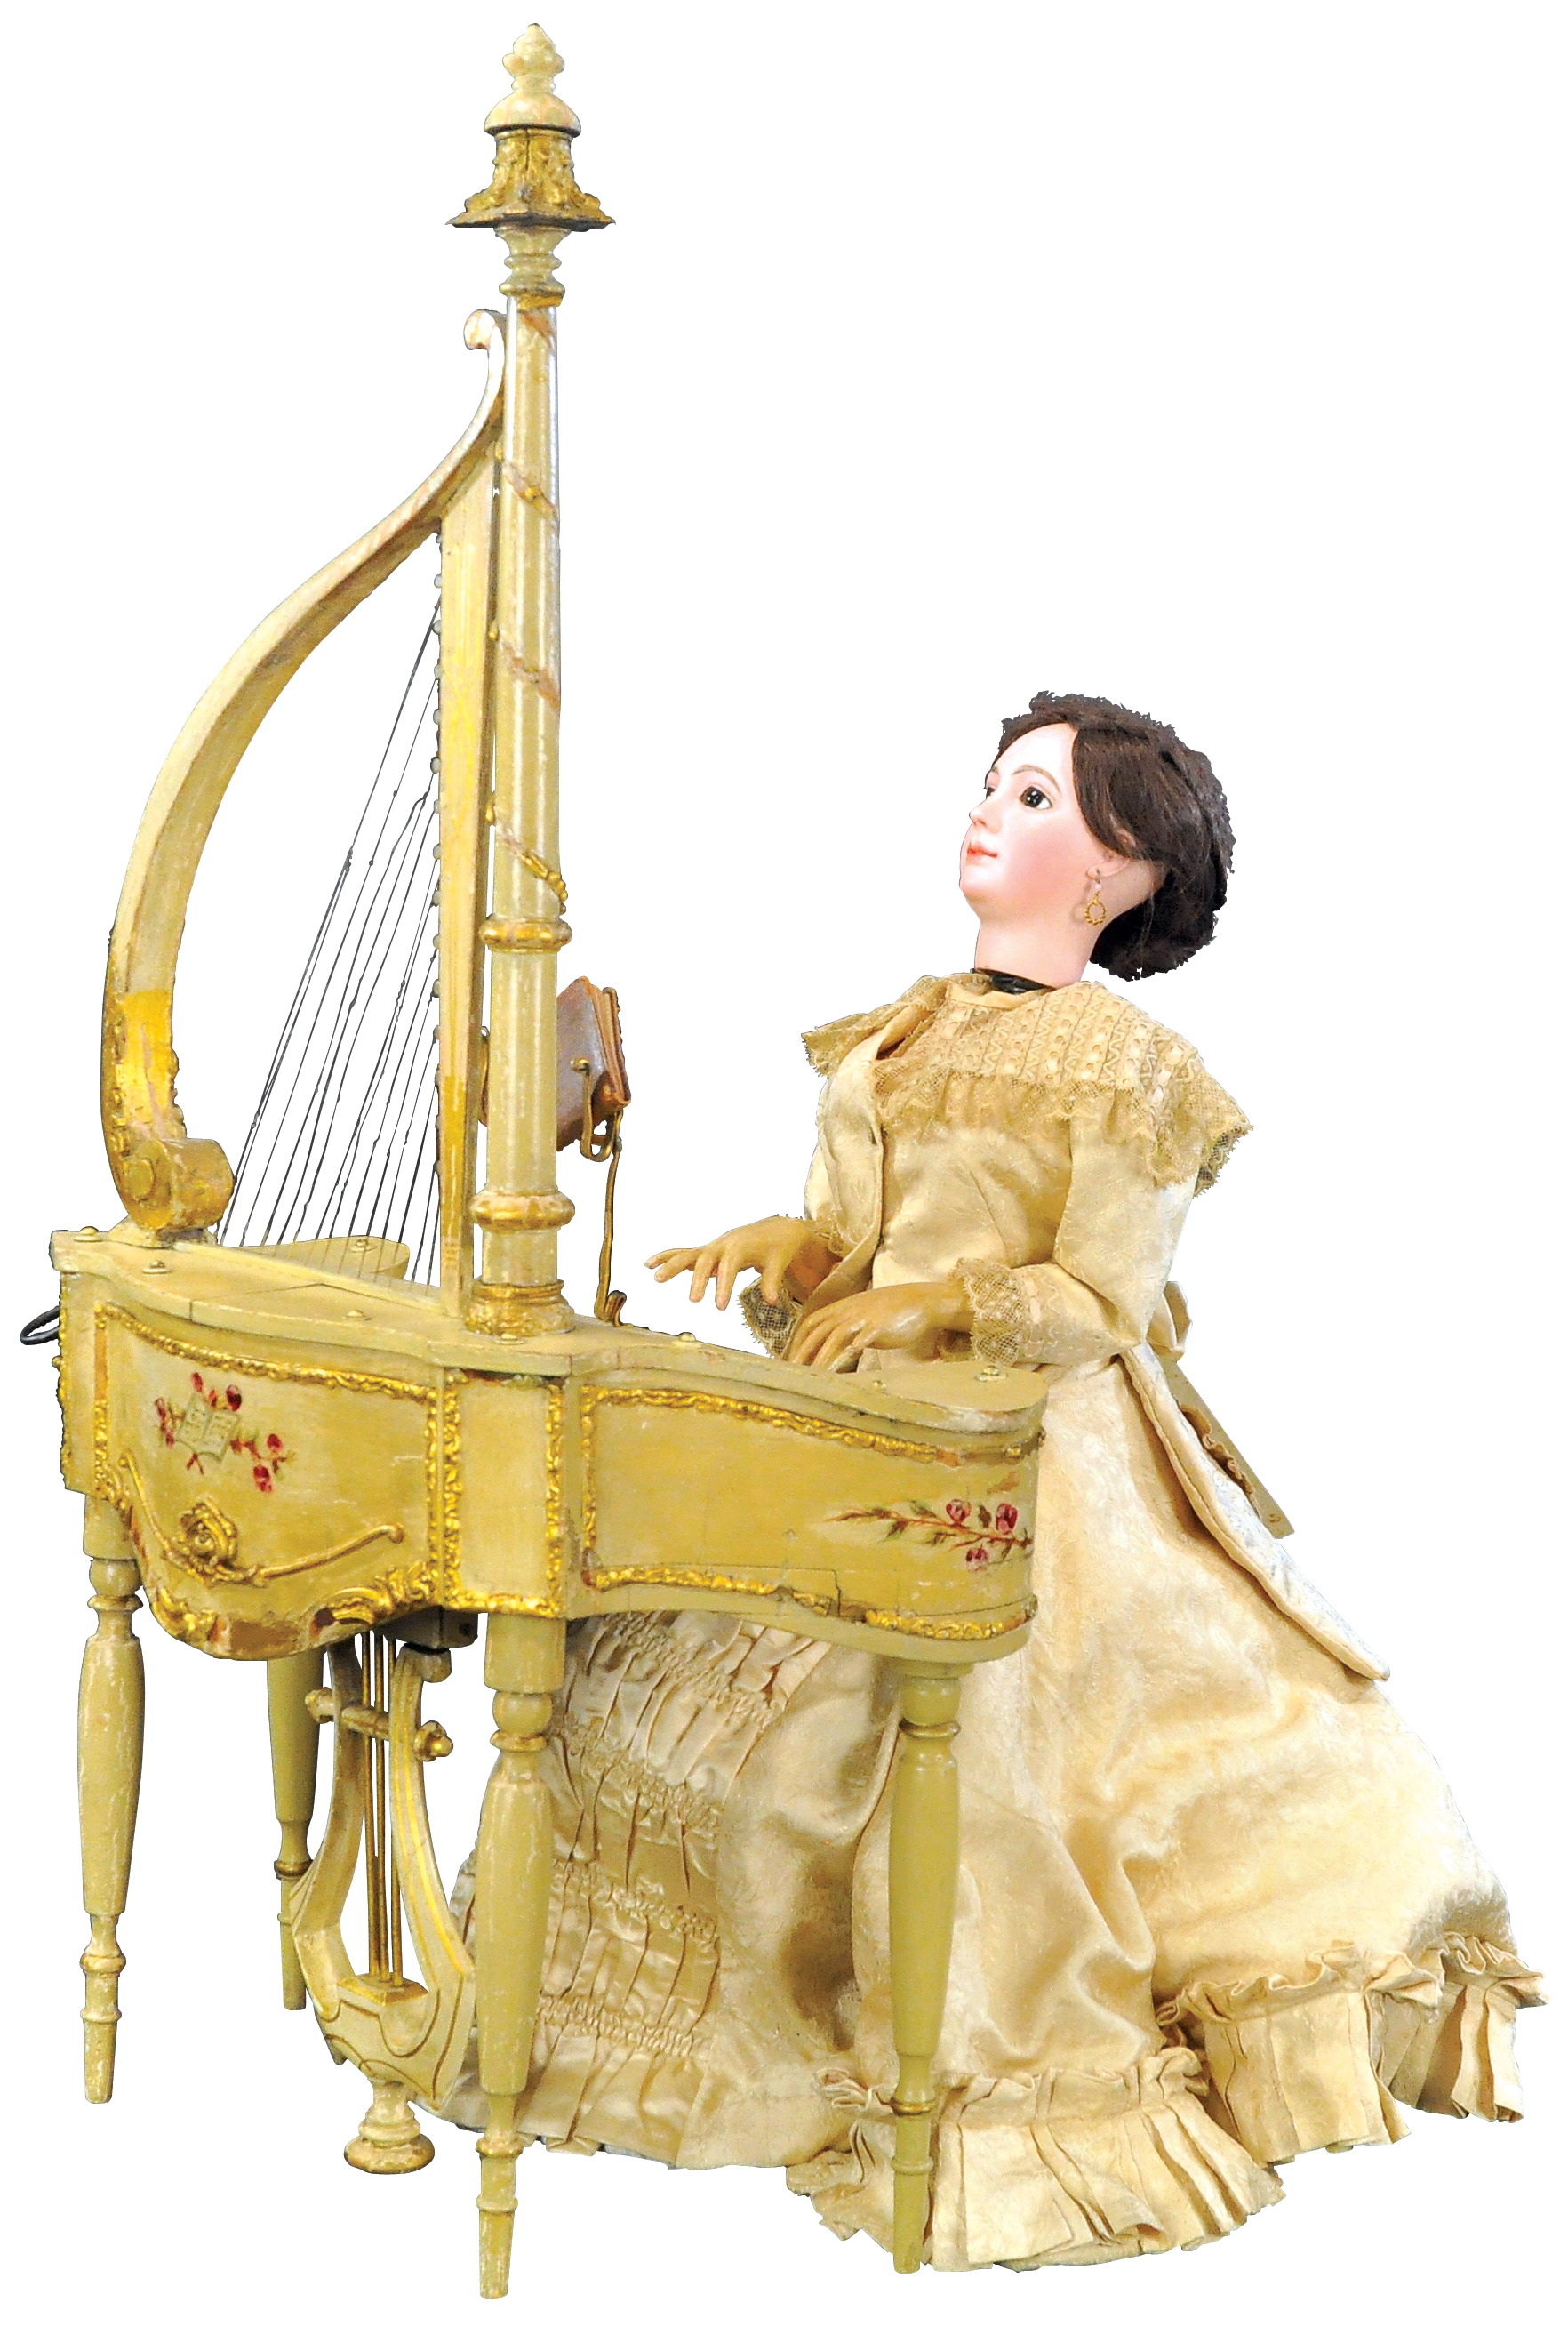 A piano-playing automaton, created by Gustave Vichy between 1890 and 1910.